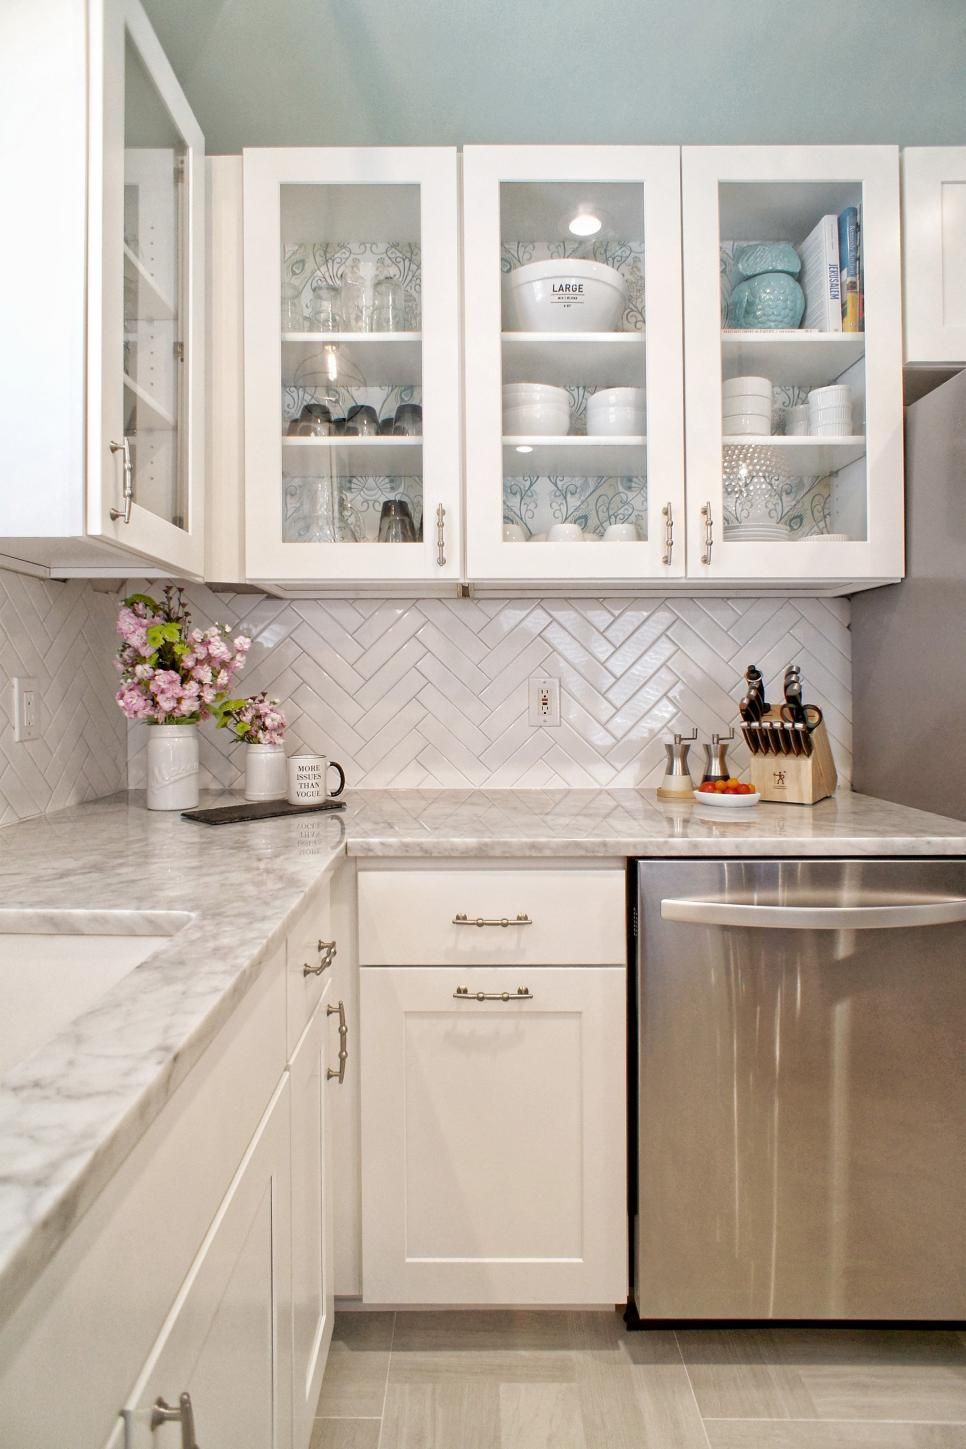 Modern Kitchen Subway Tile Backsplash Our 25 Mostpinned Photos Of 2016  Herringbone Backsplash Shaker